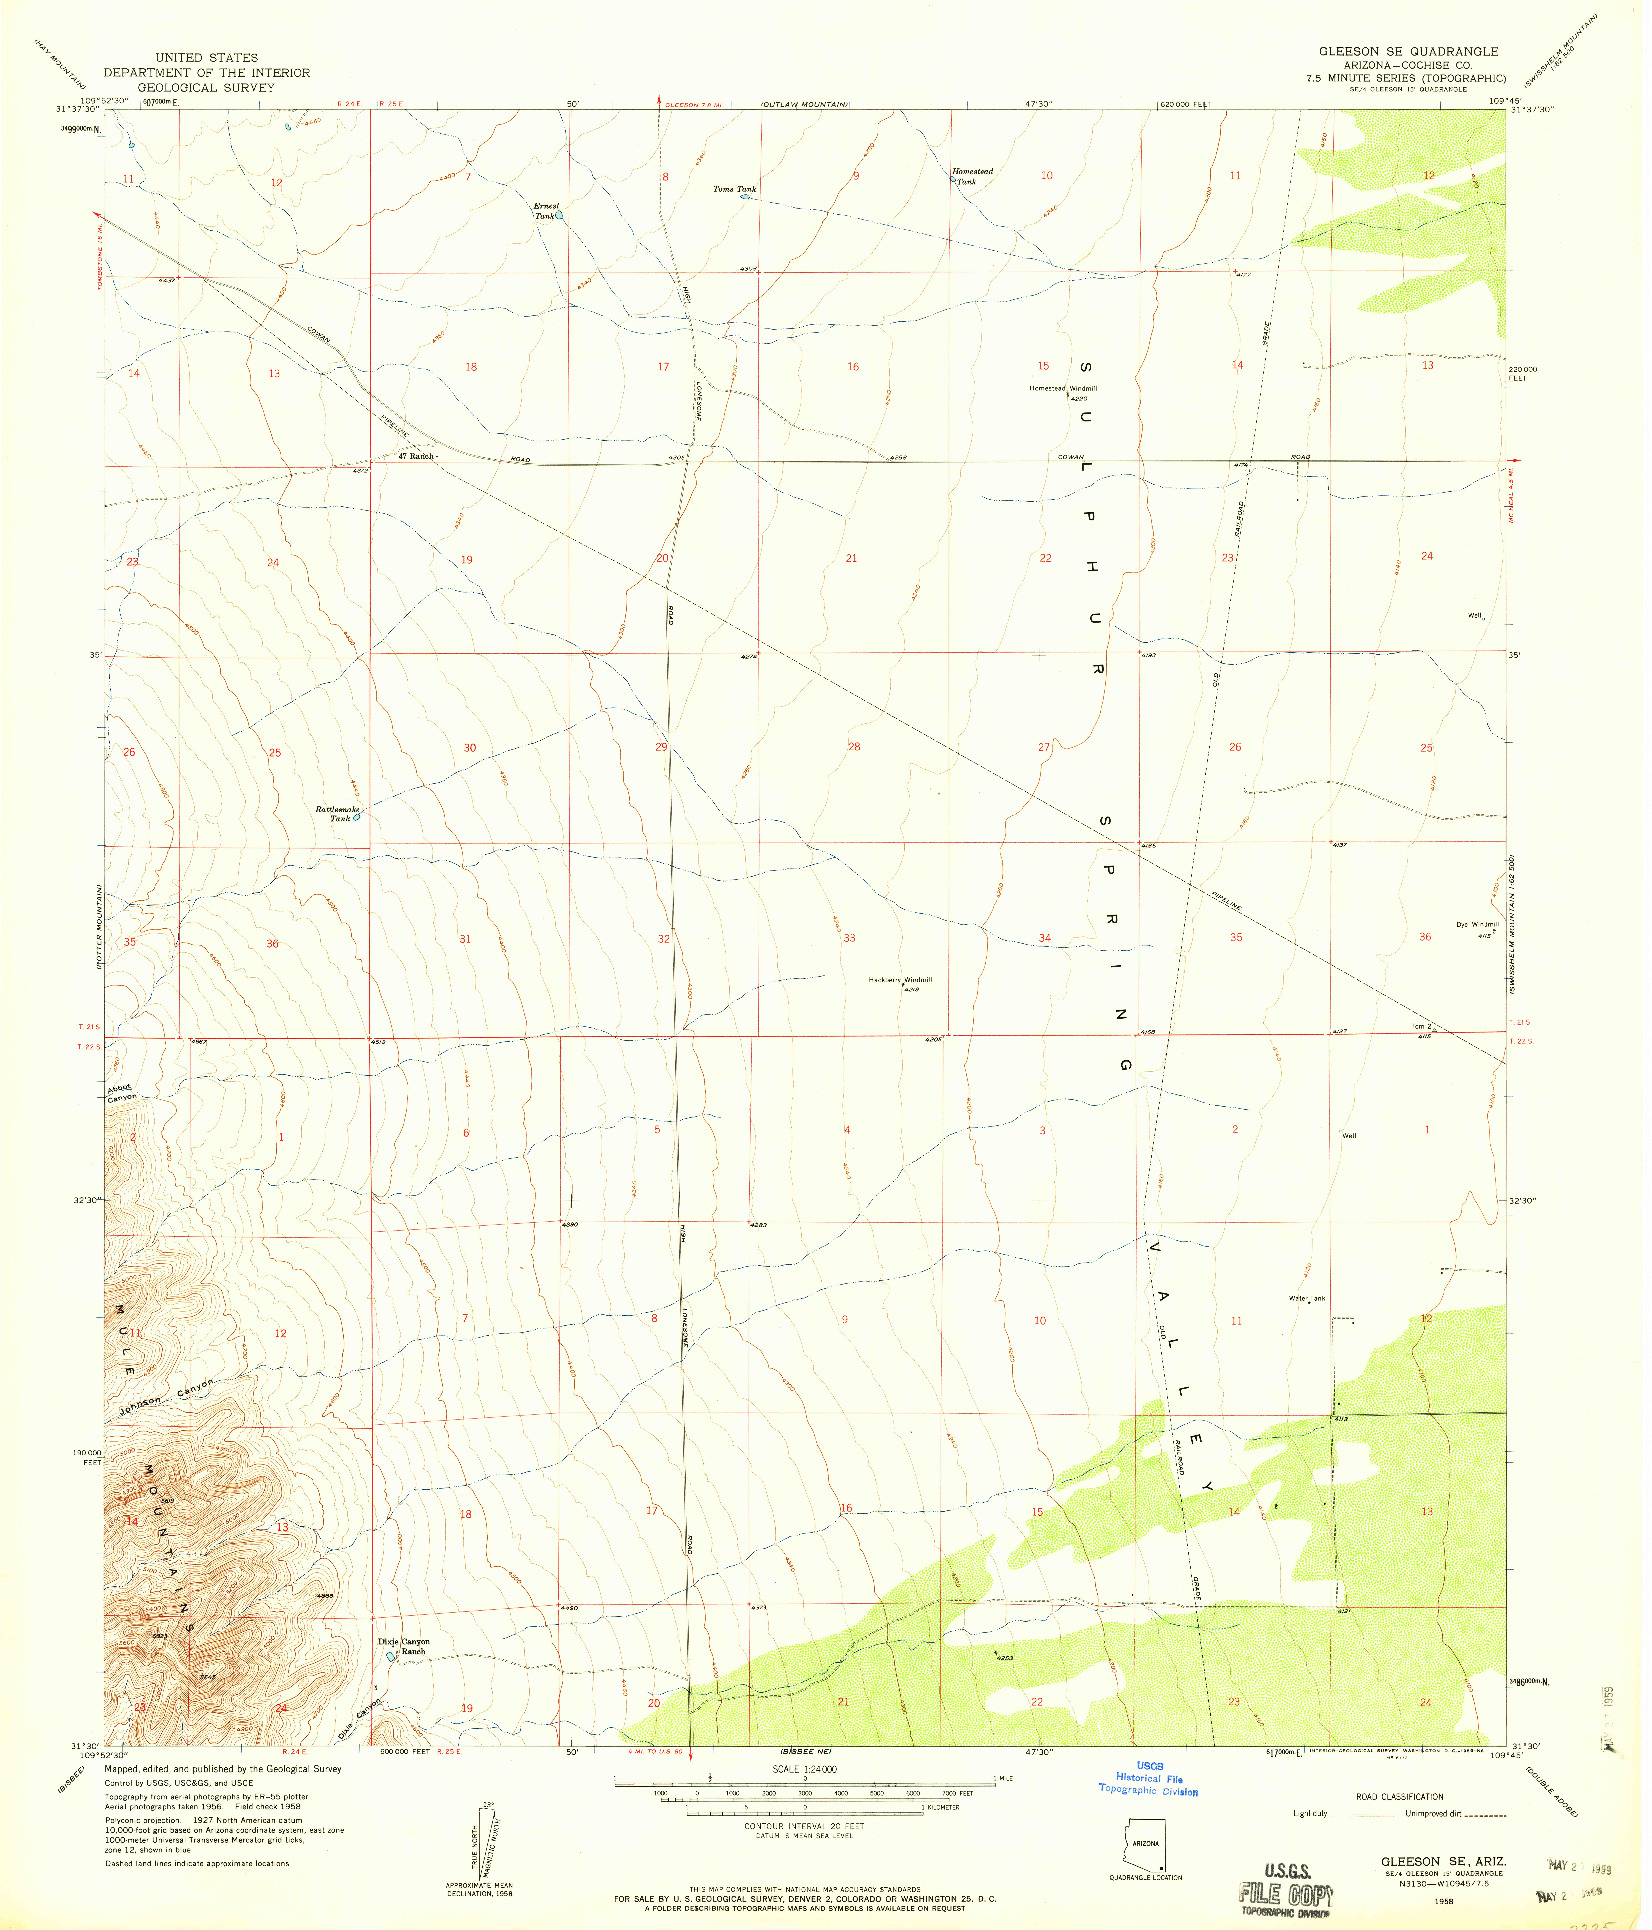 USGS 1:24000-SCALE QUADRANGLE FOR GLEESON SE, AZ 1958